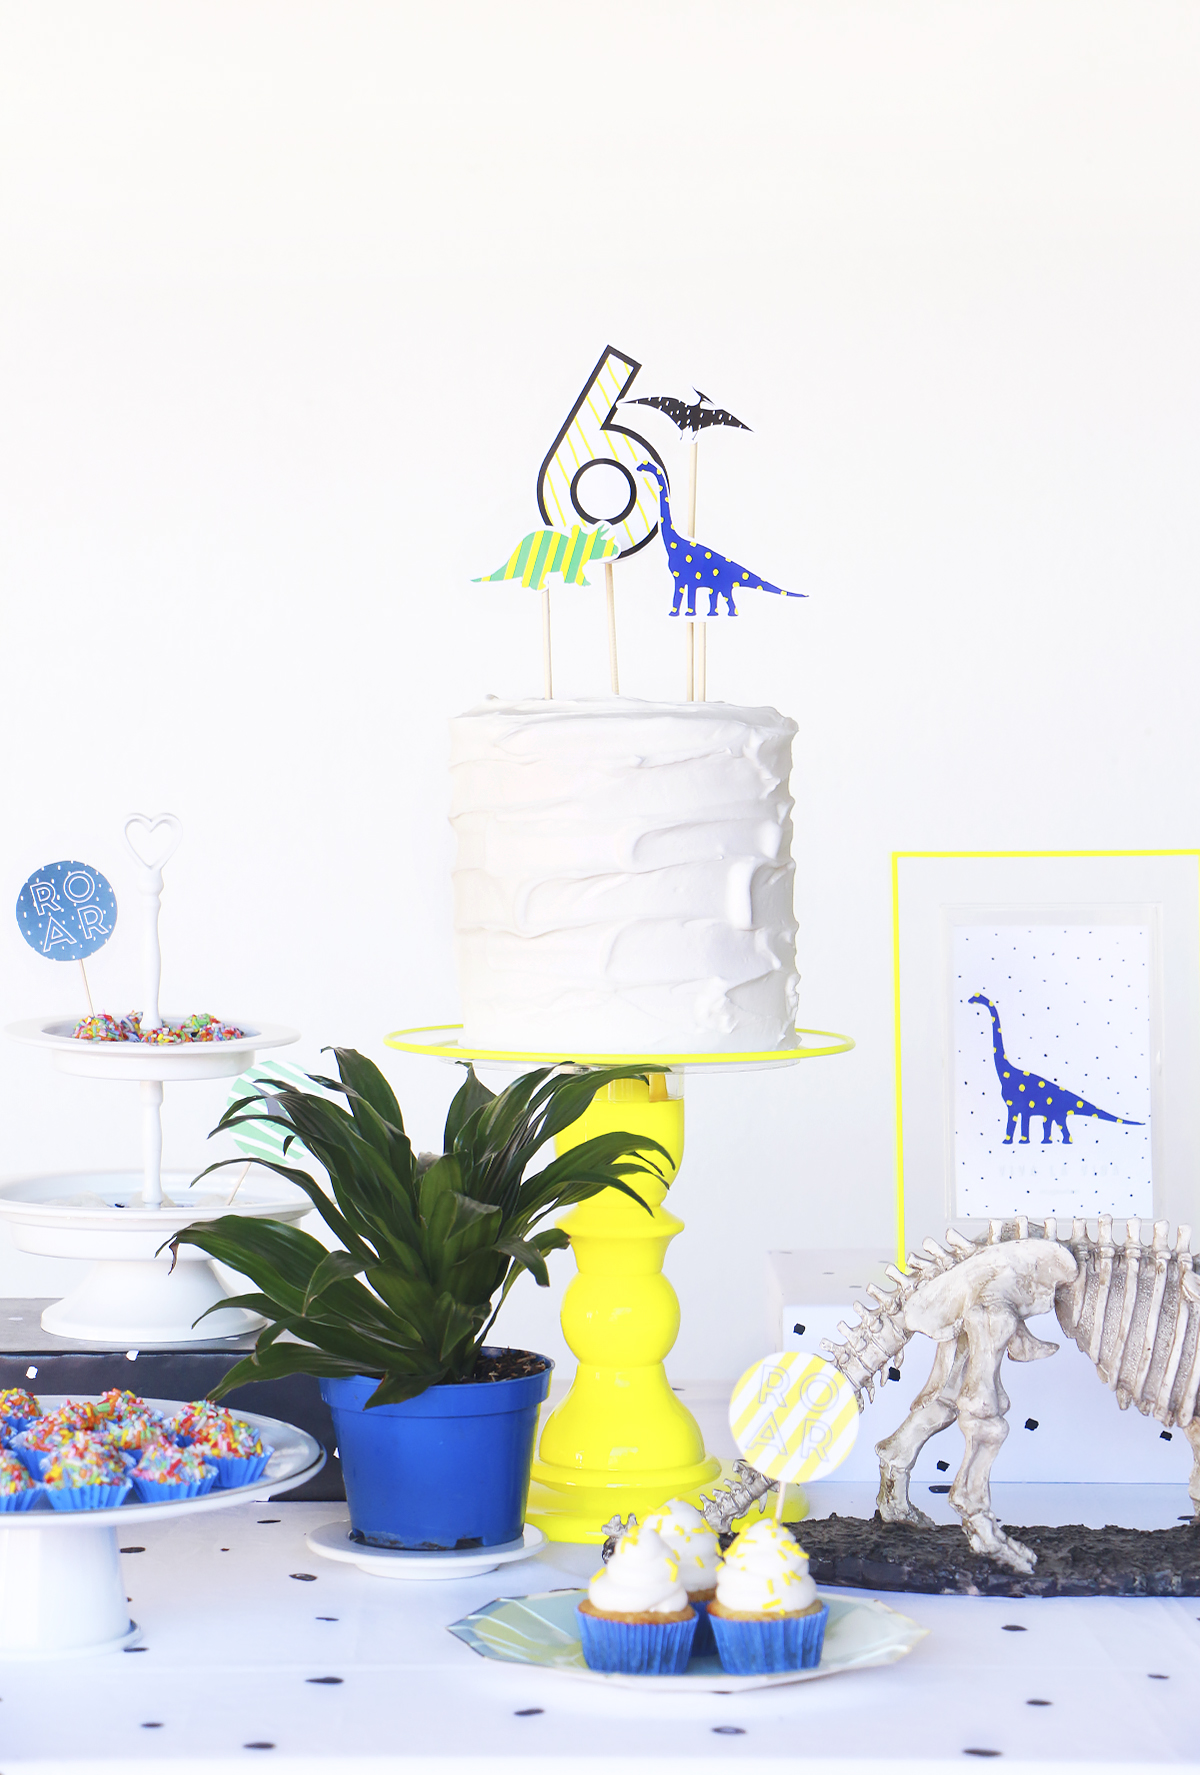 festa dinossauro simples e barata para imprimir blog do math modern minimal dinossaur party decor